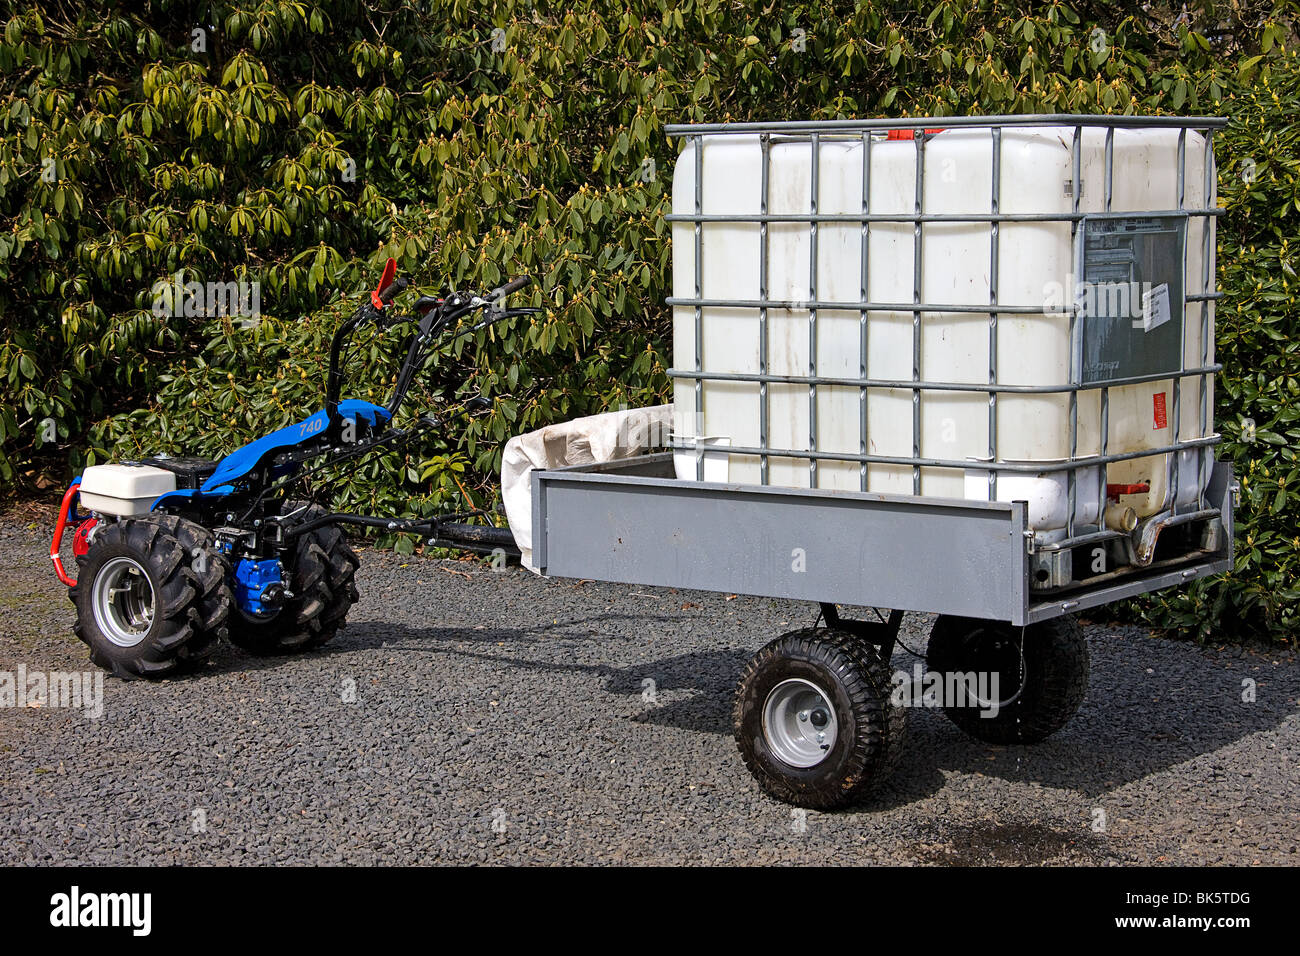 Water Tank Trailer >> Bcs Tractor And Trailer With Water Tank Stock Photo 29017788 Alamy